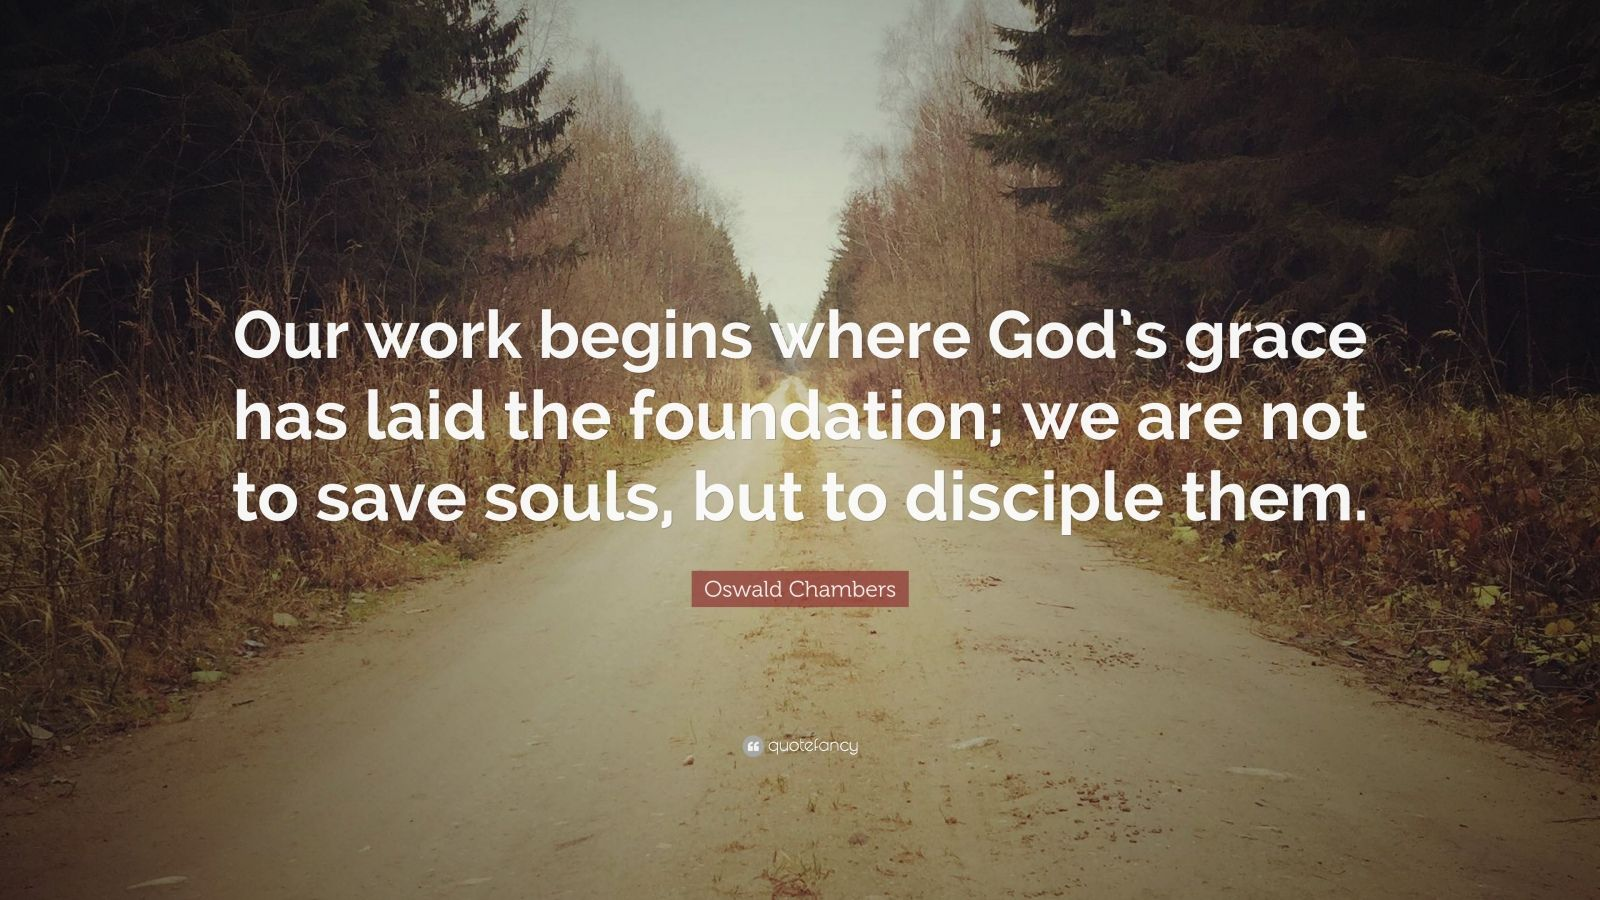 """Oswald Chambers Quote: """"Our work begins where God's grace has laid the foundation; we are not to save souls, but to disciple them."""""""